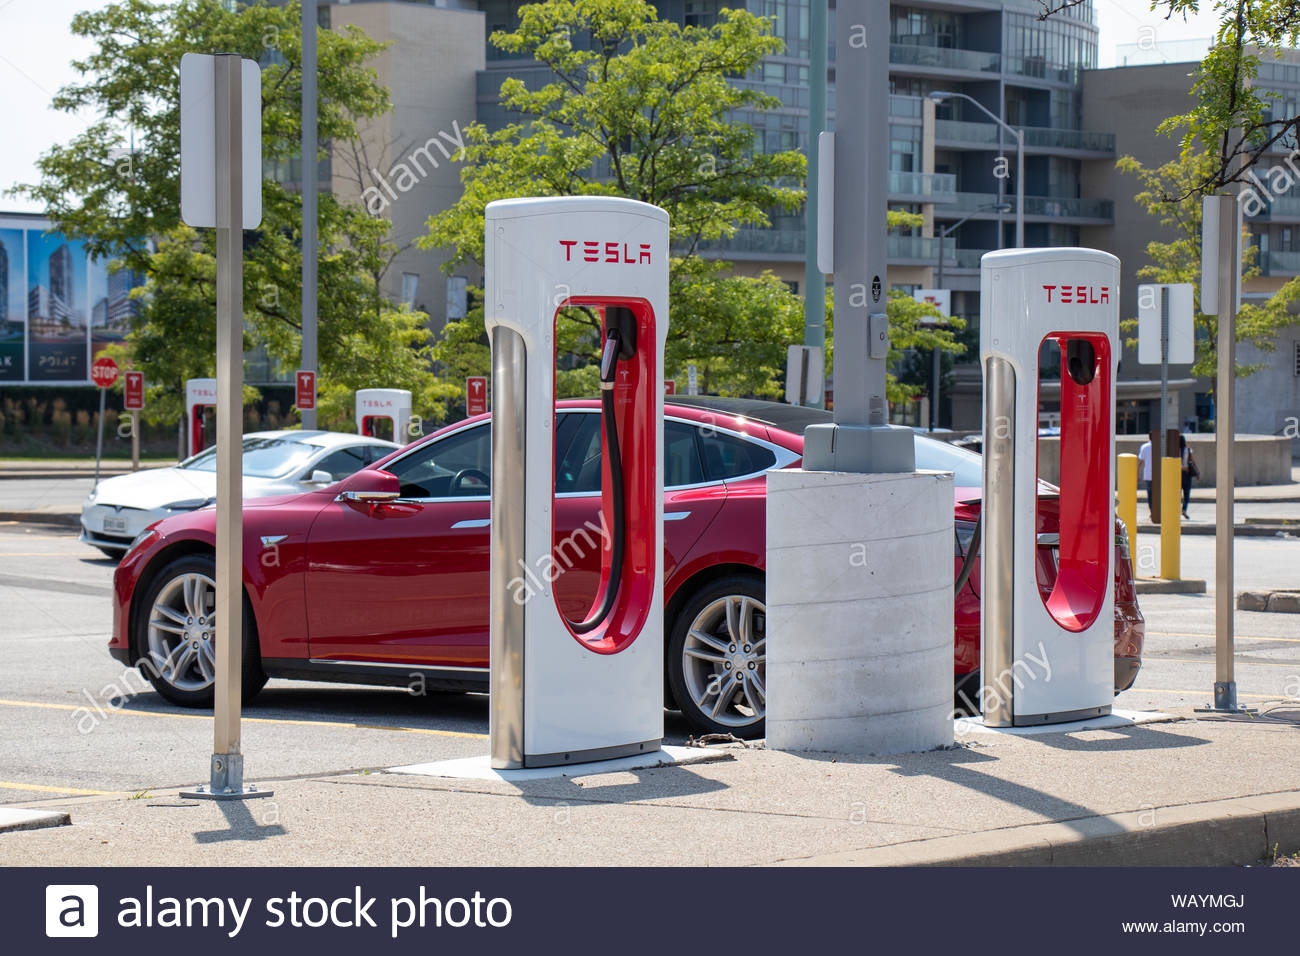 Tesla Supercharger Station seen with red Tesla Model S and white 1300x956